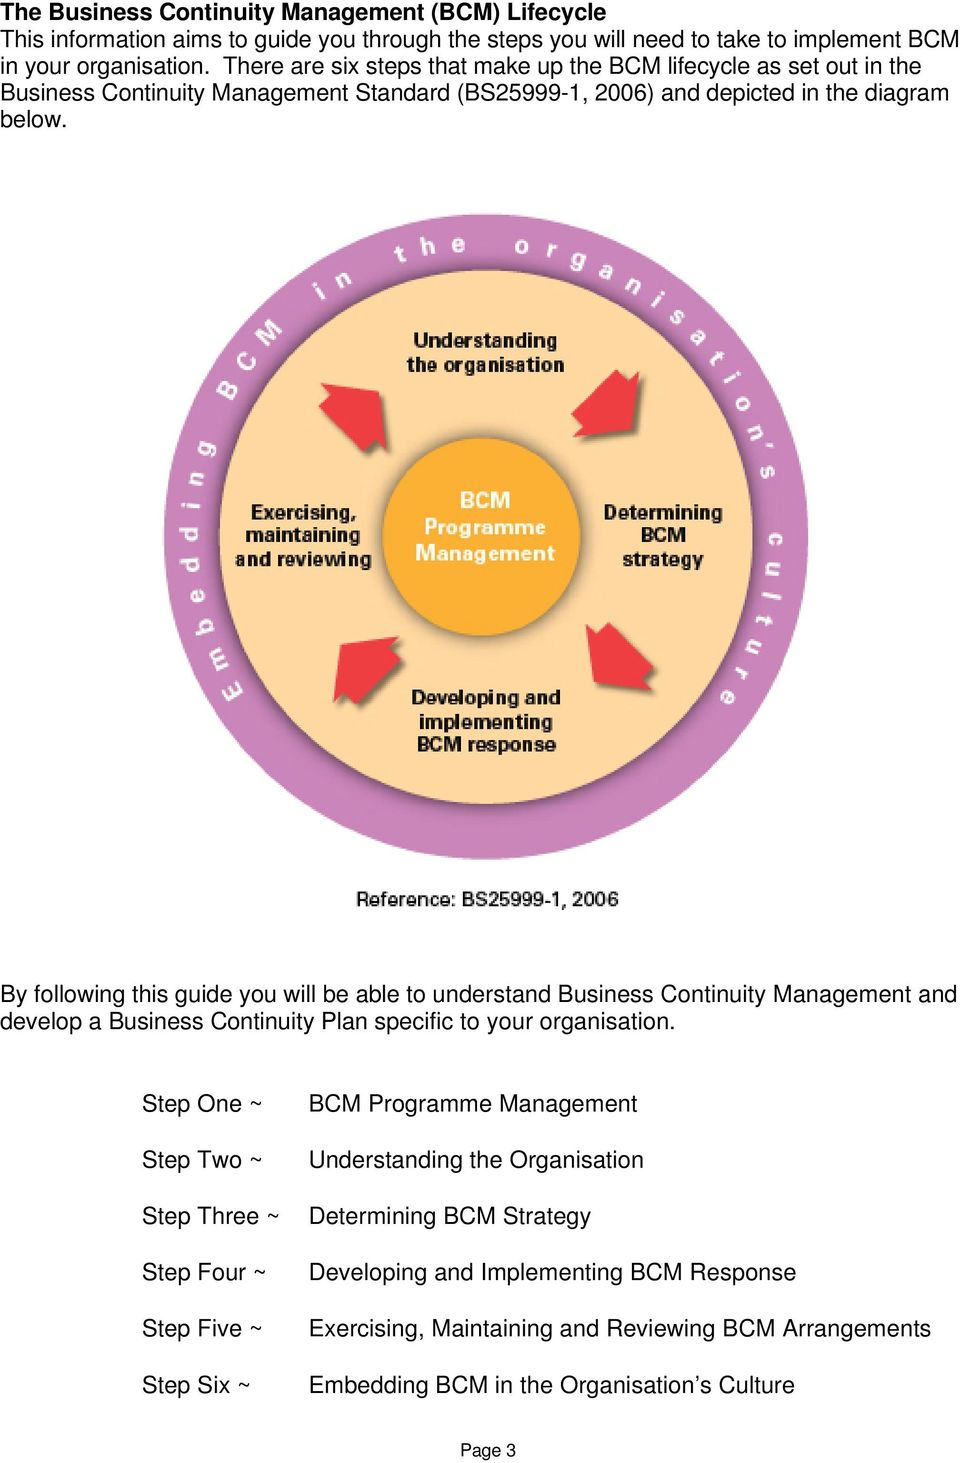 By following this guide you will be able to understand Business Continuity Management and develop a Business Continuity Plan specific to your organisation.